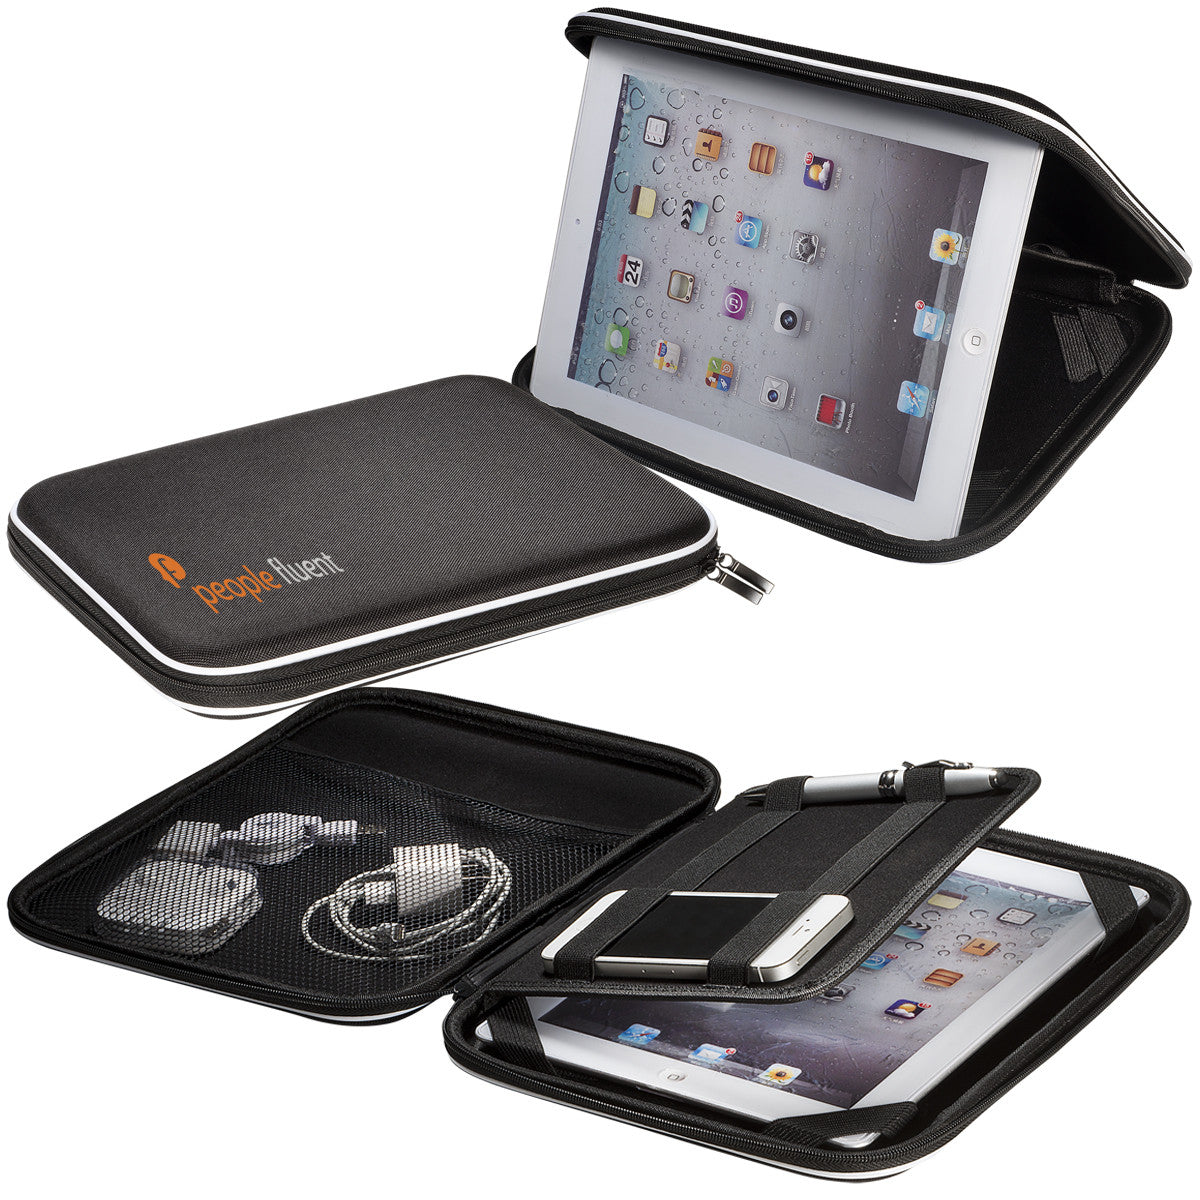 Zip-Up Tablet Organizer Case